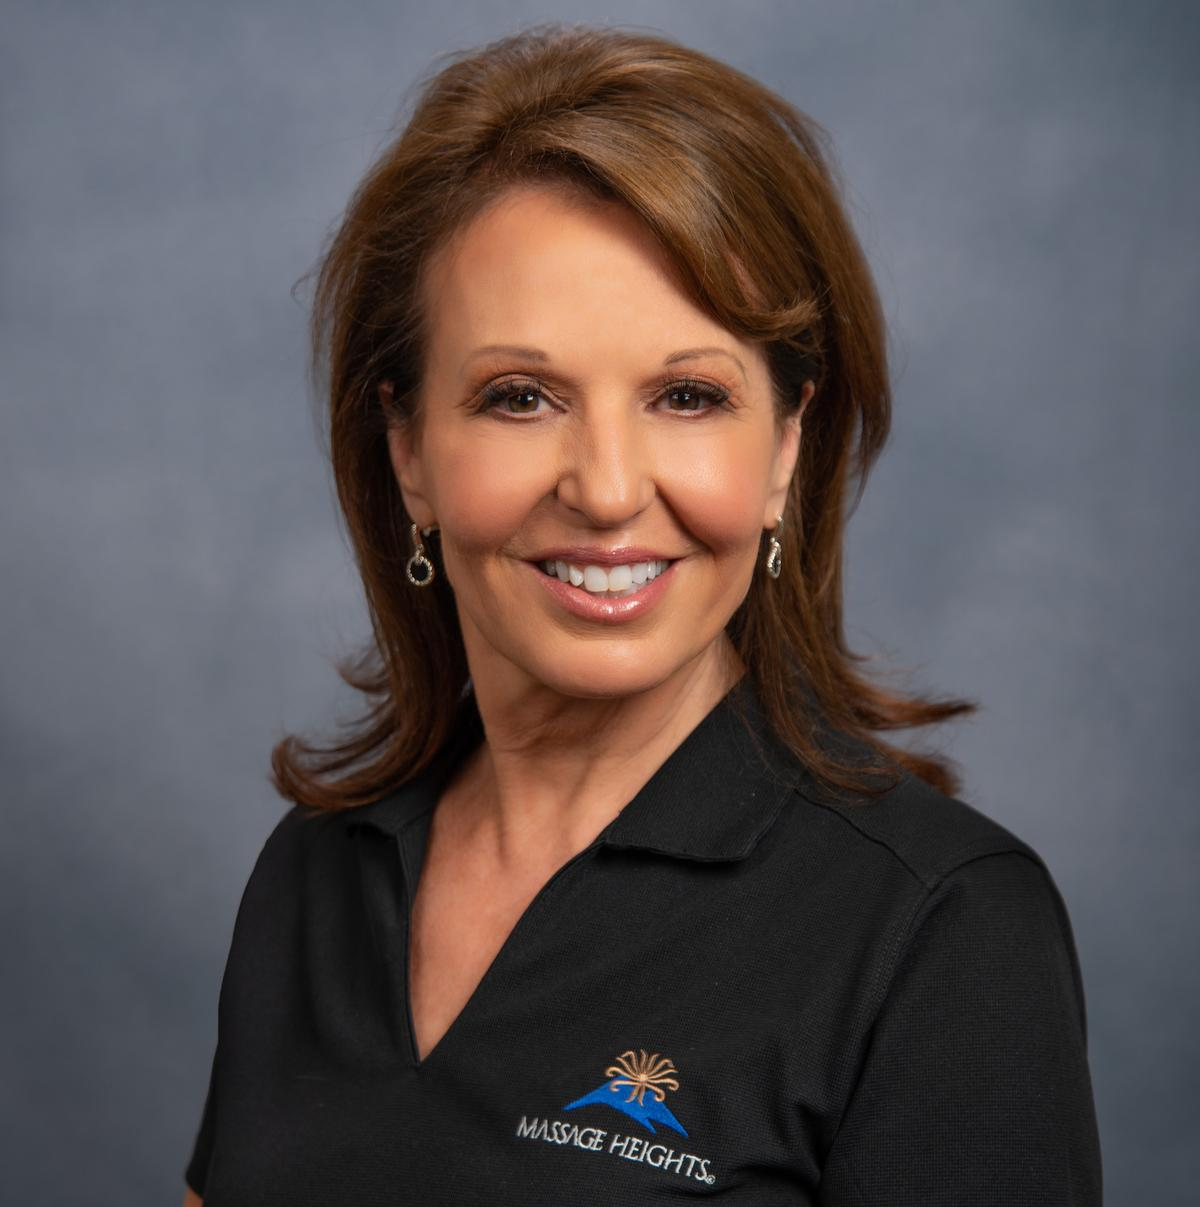 Susan Boresow has become the CEO and president and begun overseeing Massage Heights' 140+ locations across the US and Canada / Jack Vaught